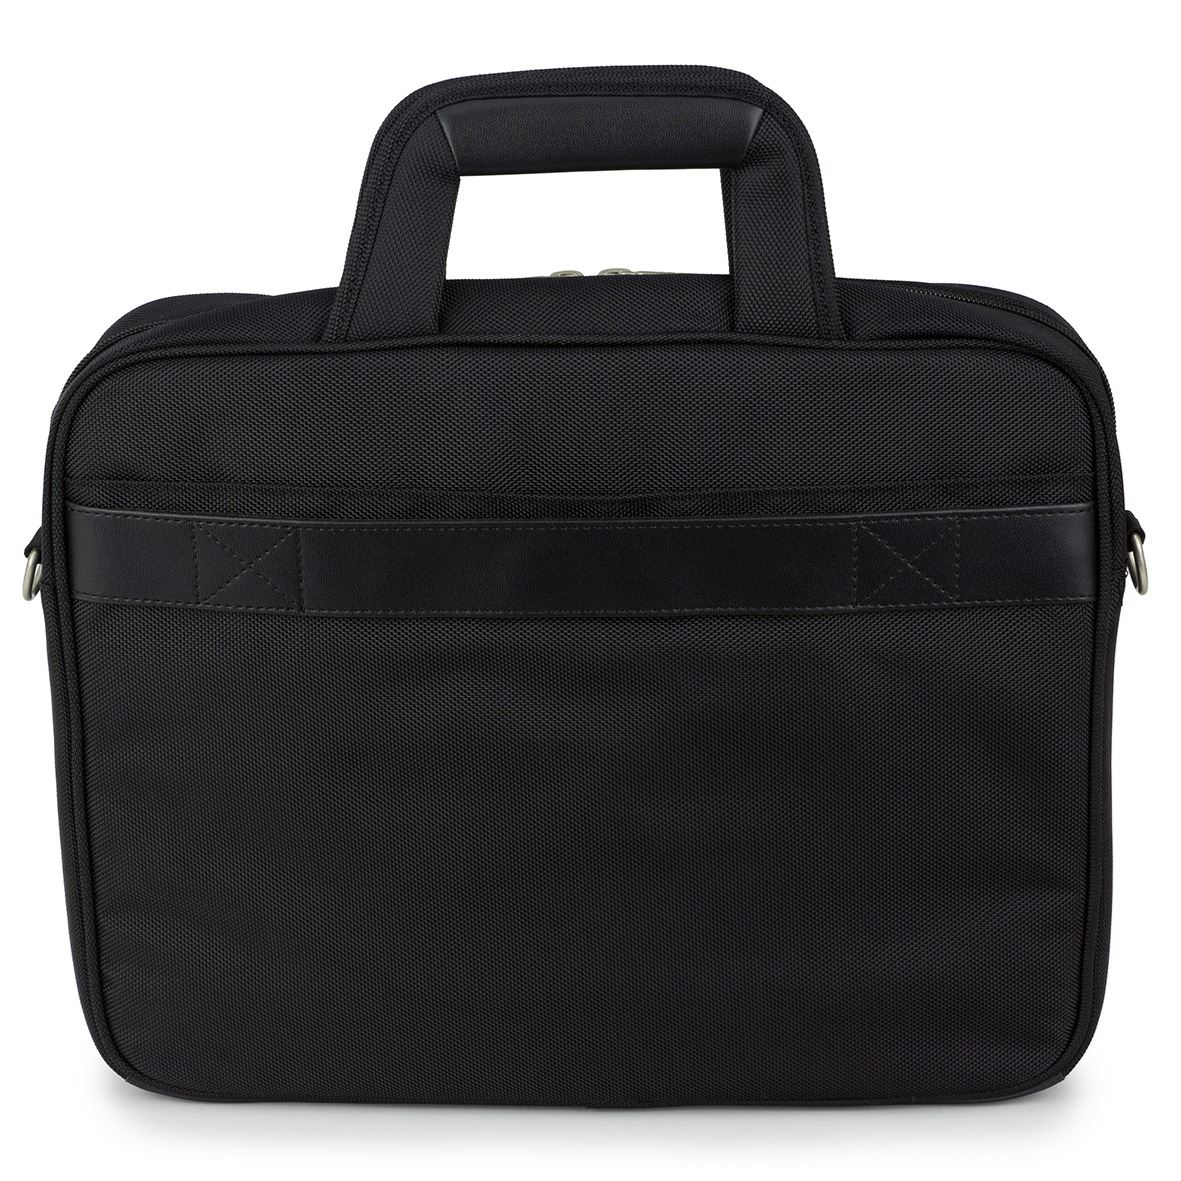 "Transit 13-14.1 ""  Topload Laptop Case - Black"